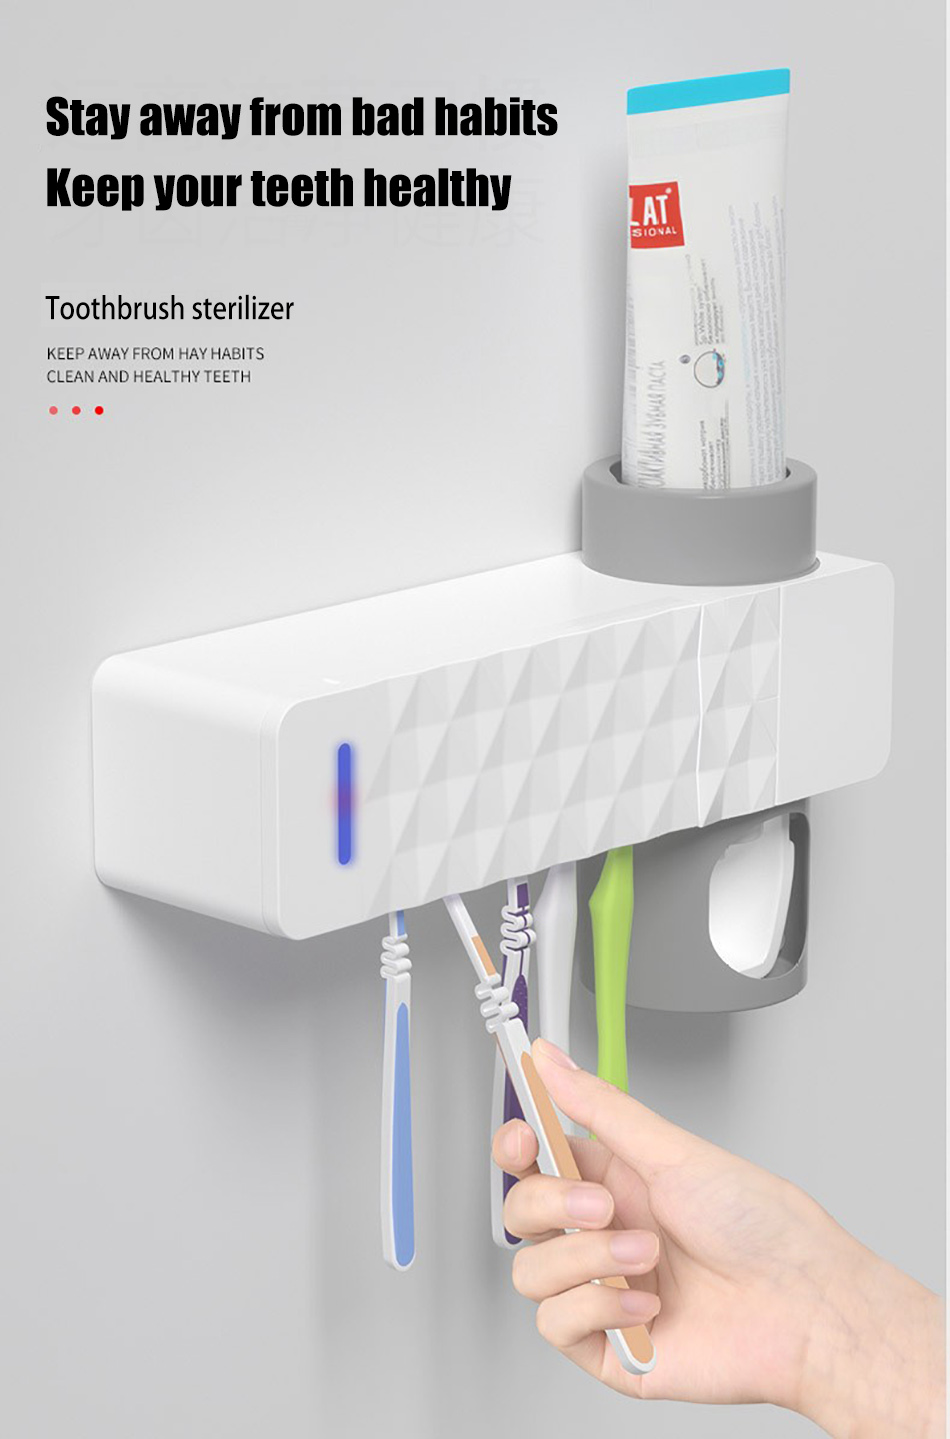 GURET 3 in 1 UV Toothbrush Sanitizer with Automatic Toothpaste Squeezers as Bathroom Accessories 11